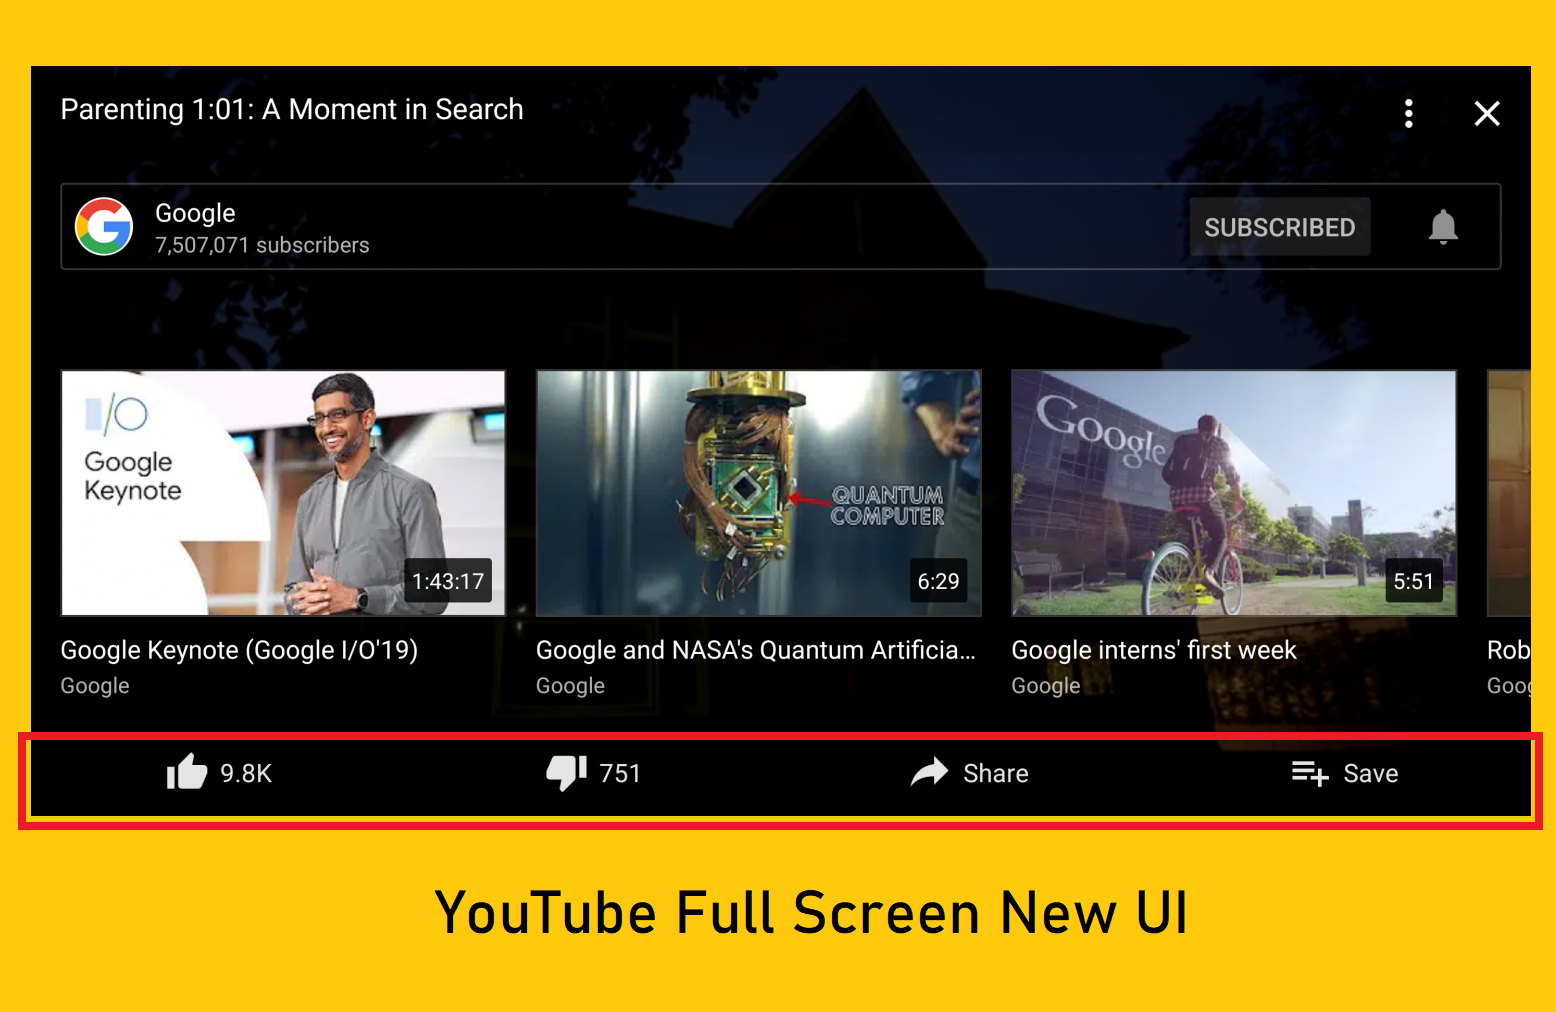 YouTube improves its UI, letting users enjoy Full-Screen